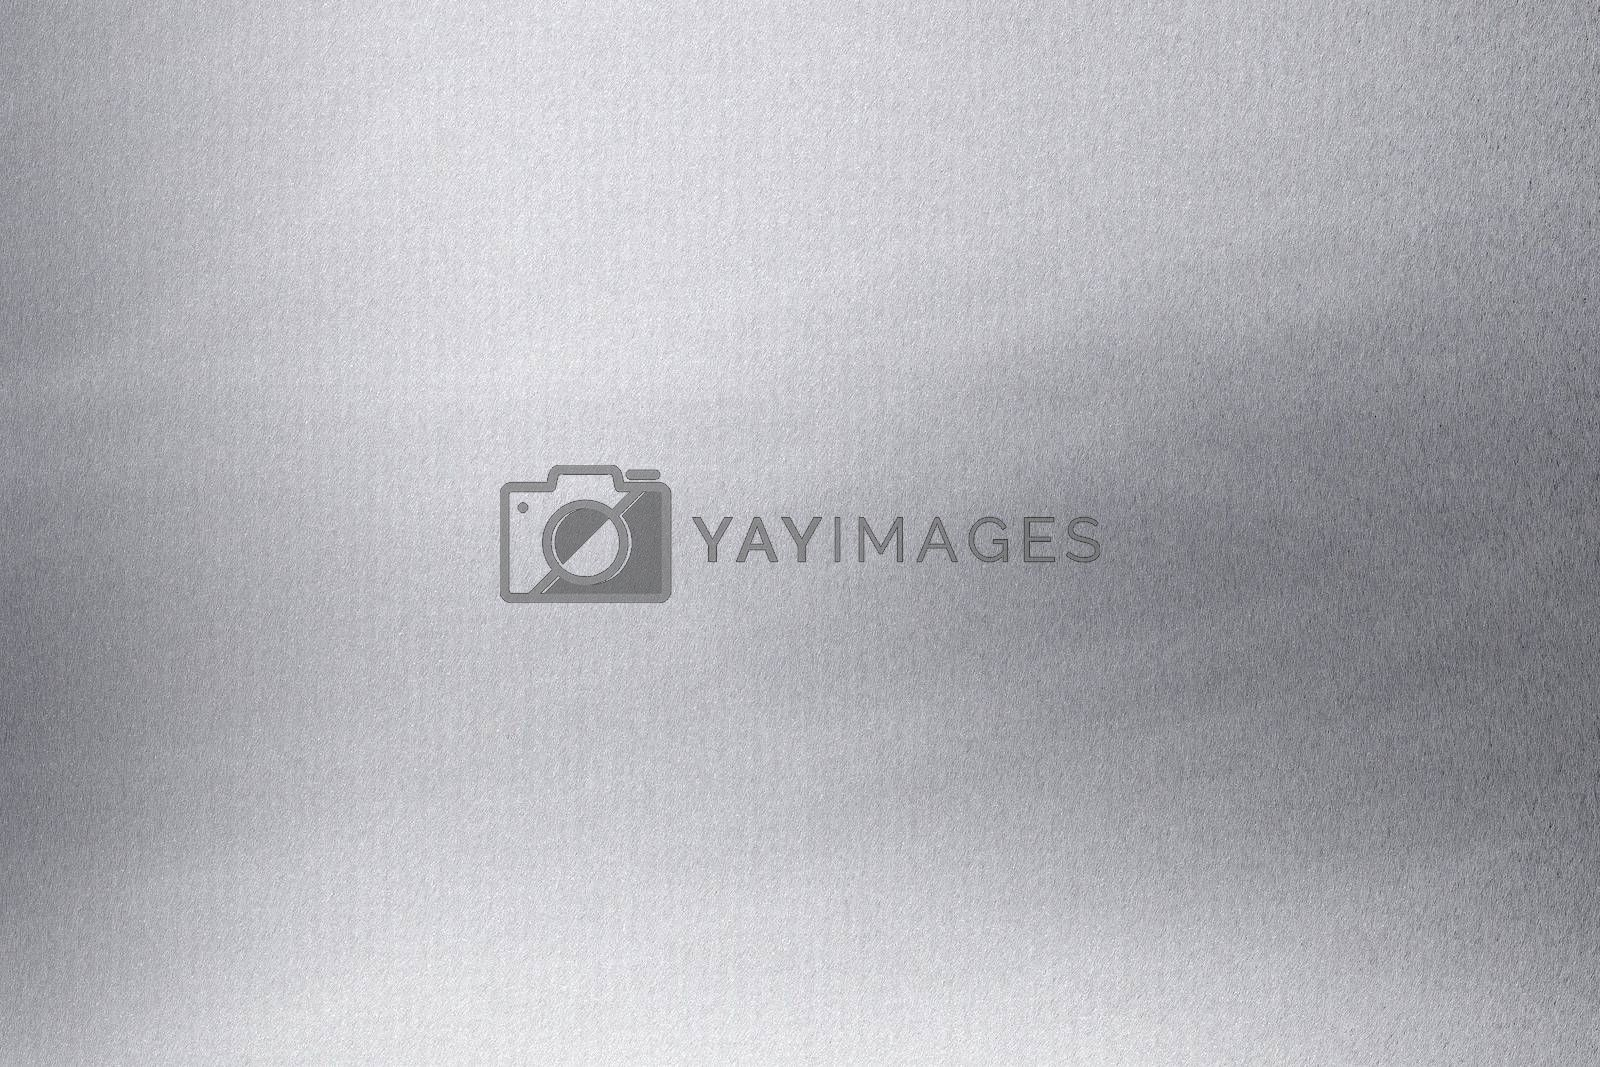 Brushed silver metallic texture, abstract background by mouu007